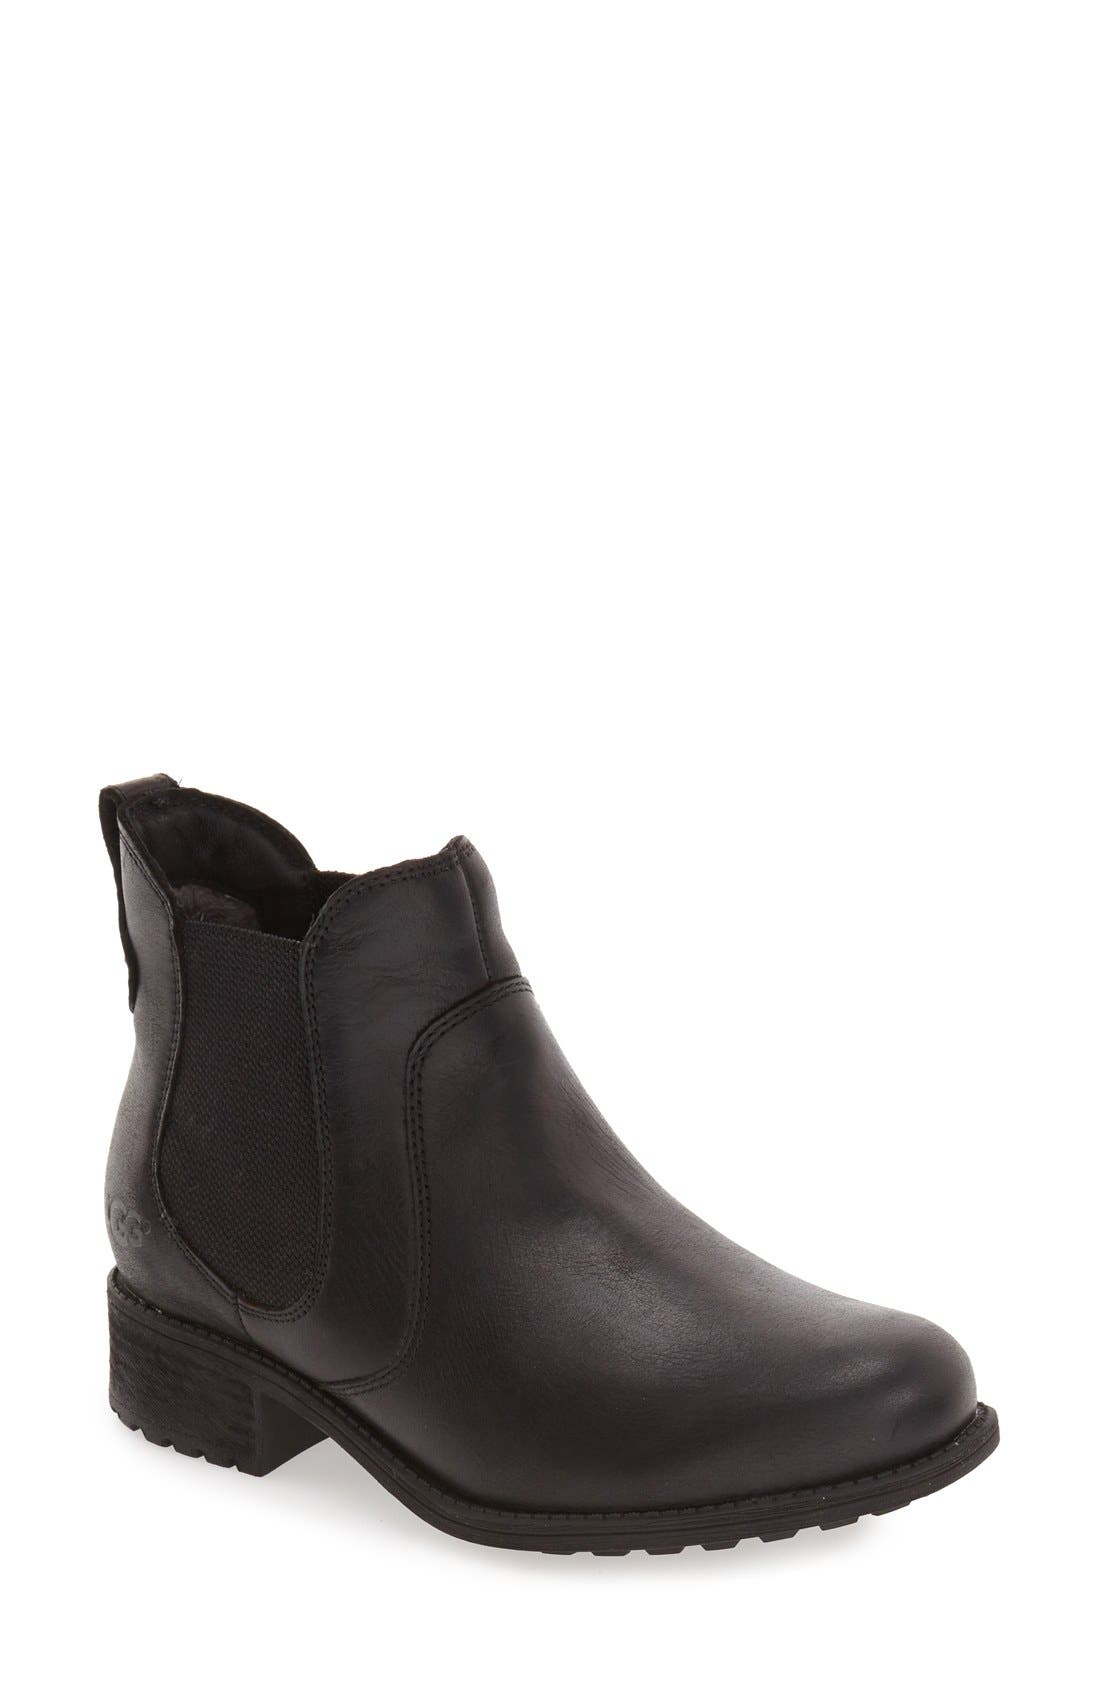 Bonham Chelsea Boot,                             Main thumbnail 1, color,                             001